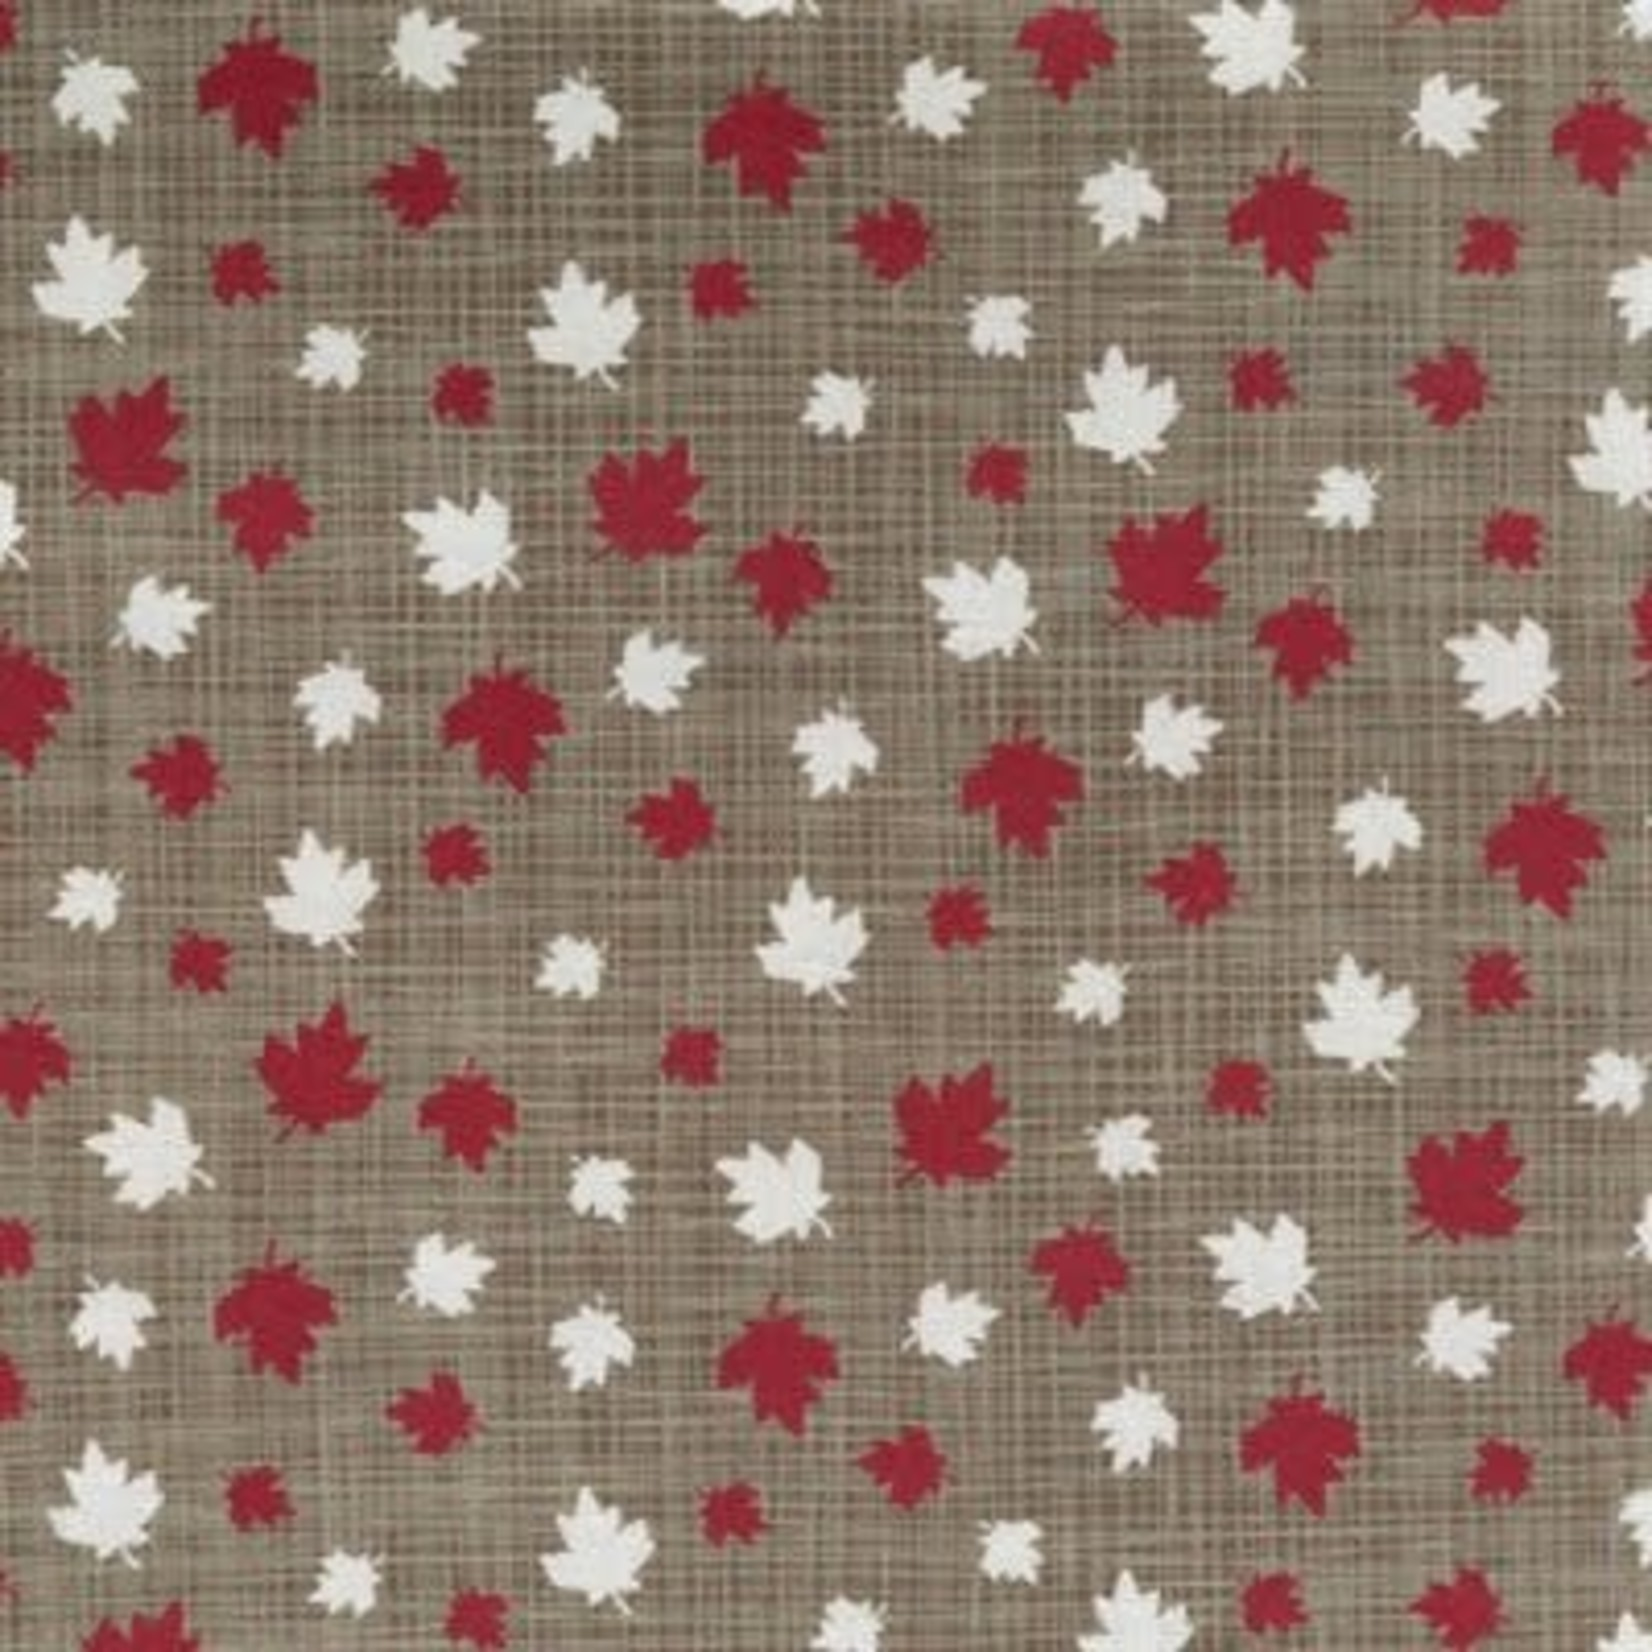 Kate & Birdie Paper Co. True North 2, Leaves, Tan 513212-16 per cm or $20/m